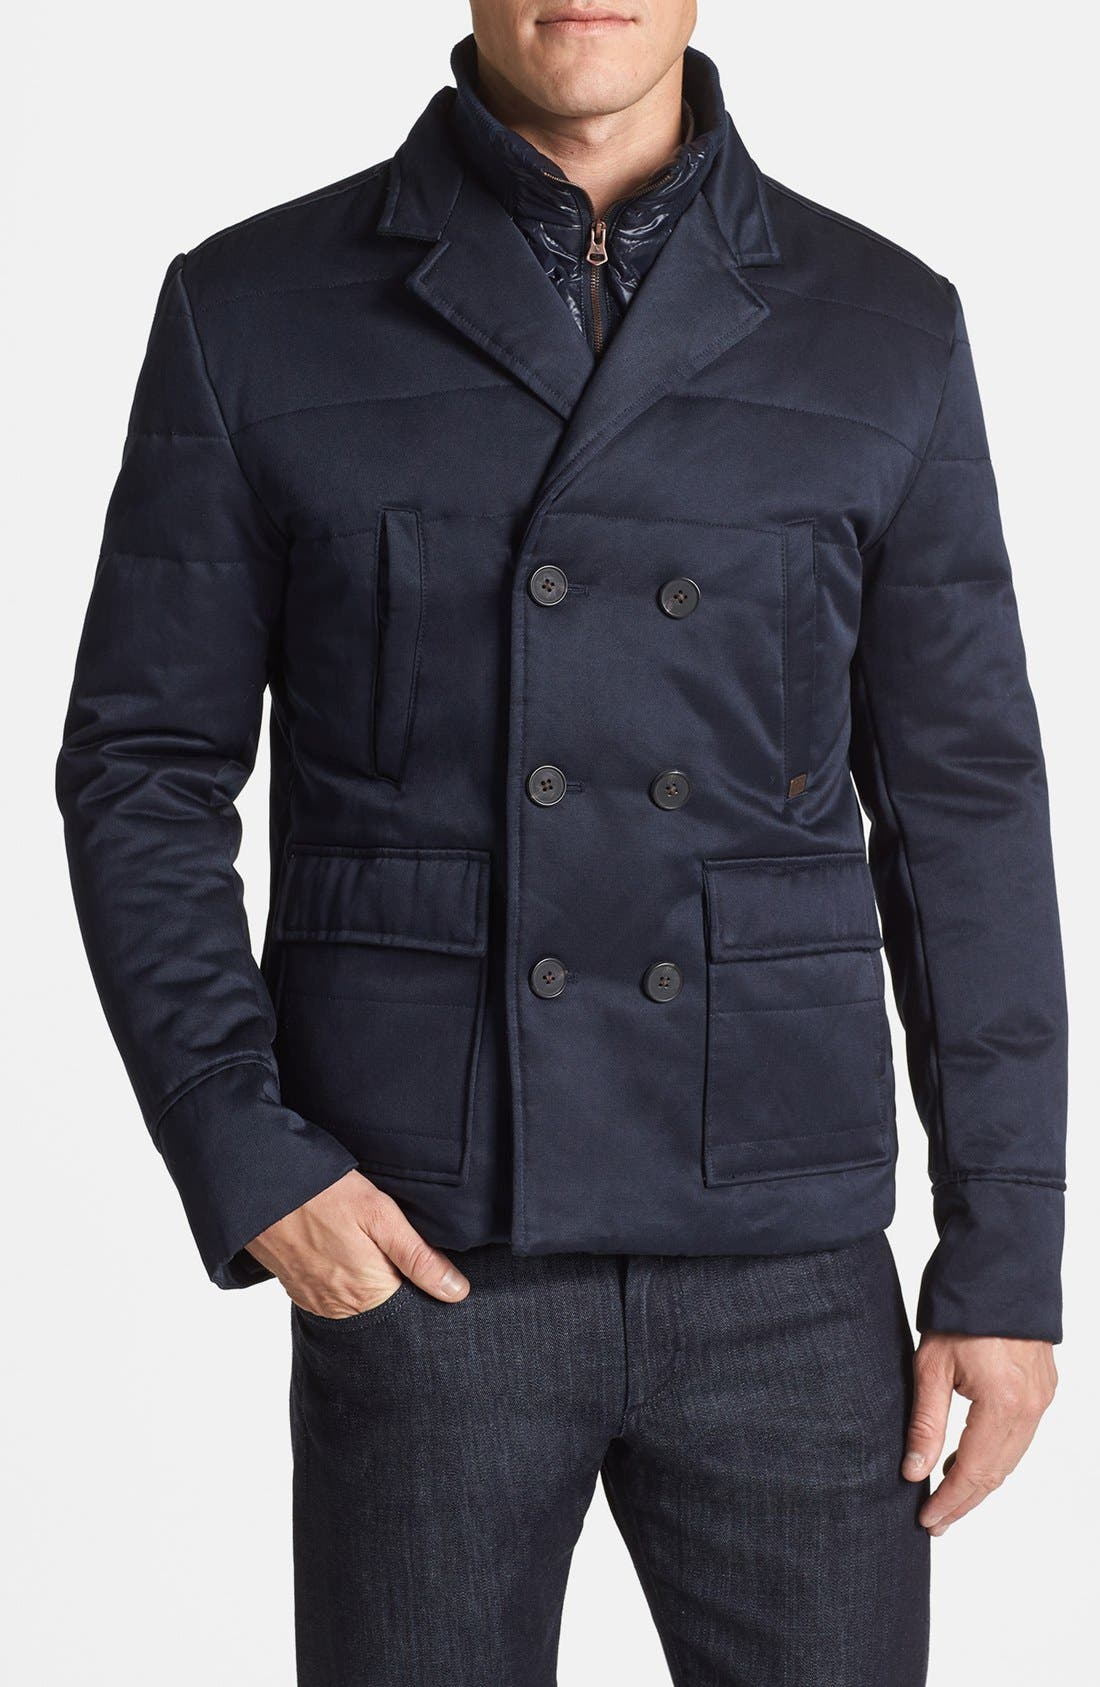 Alternate Image 1 Selected - Antony Morato Slim Fit Double Breasted Jacket